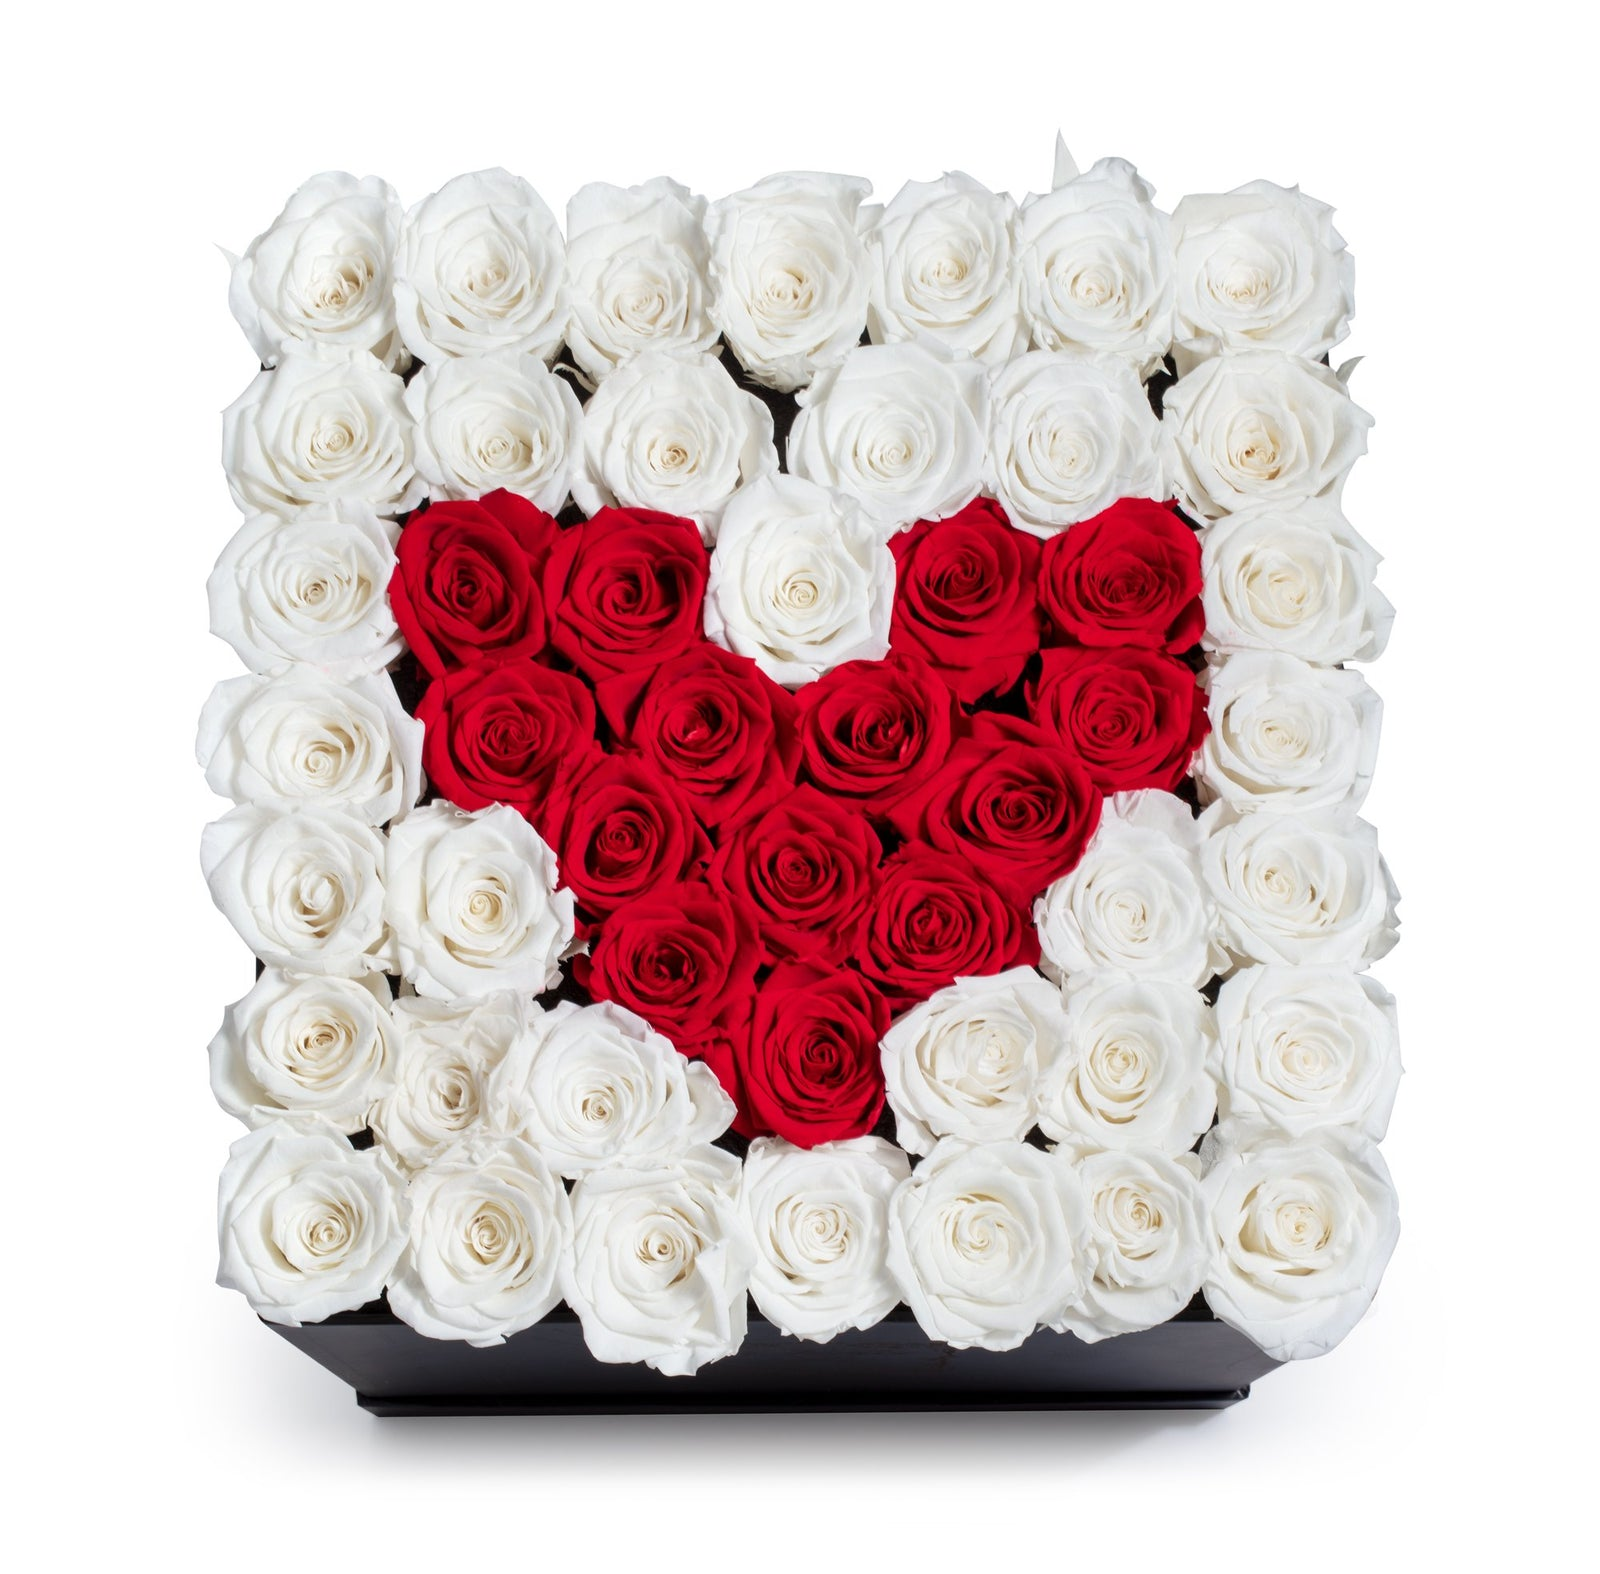 Heart Design Red & White Preserved Roses - Large Square Luxury Black